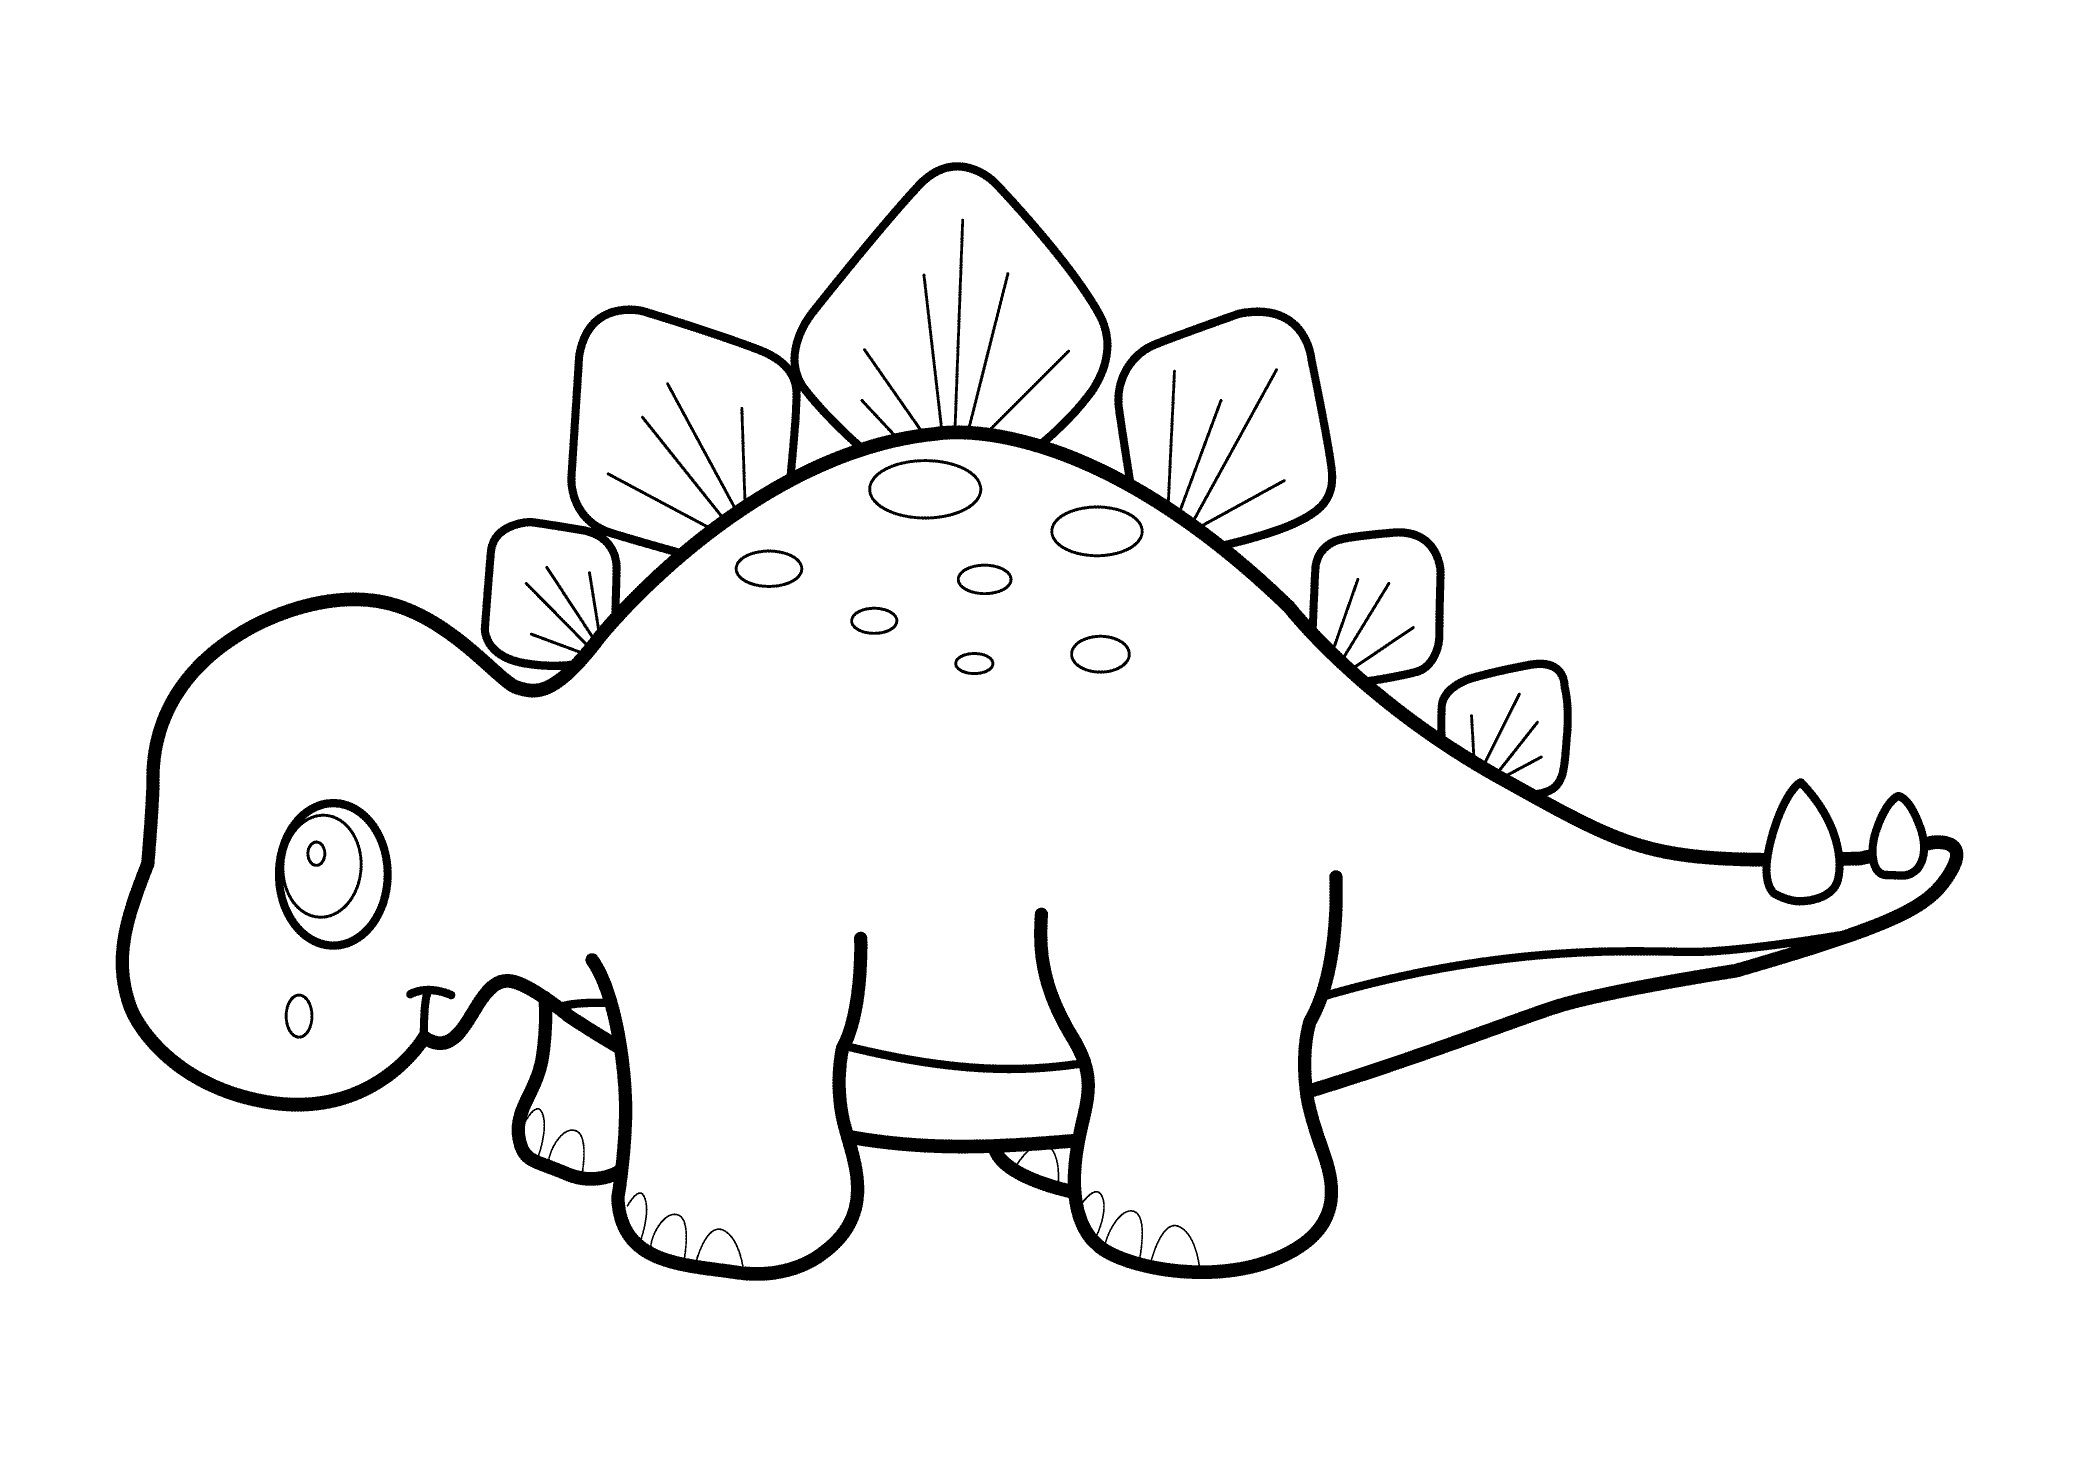 Printable Dinosaur Coloring Pages (With Images) Dinosaur